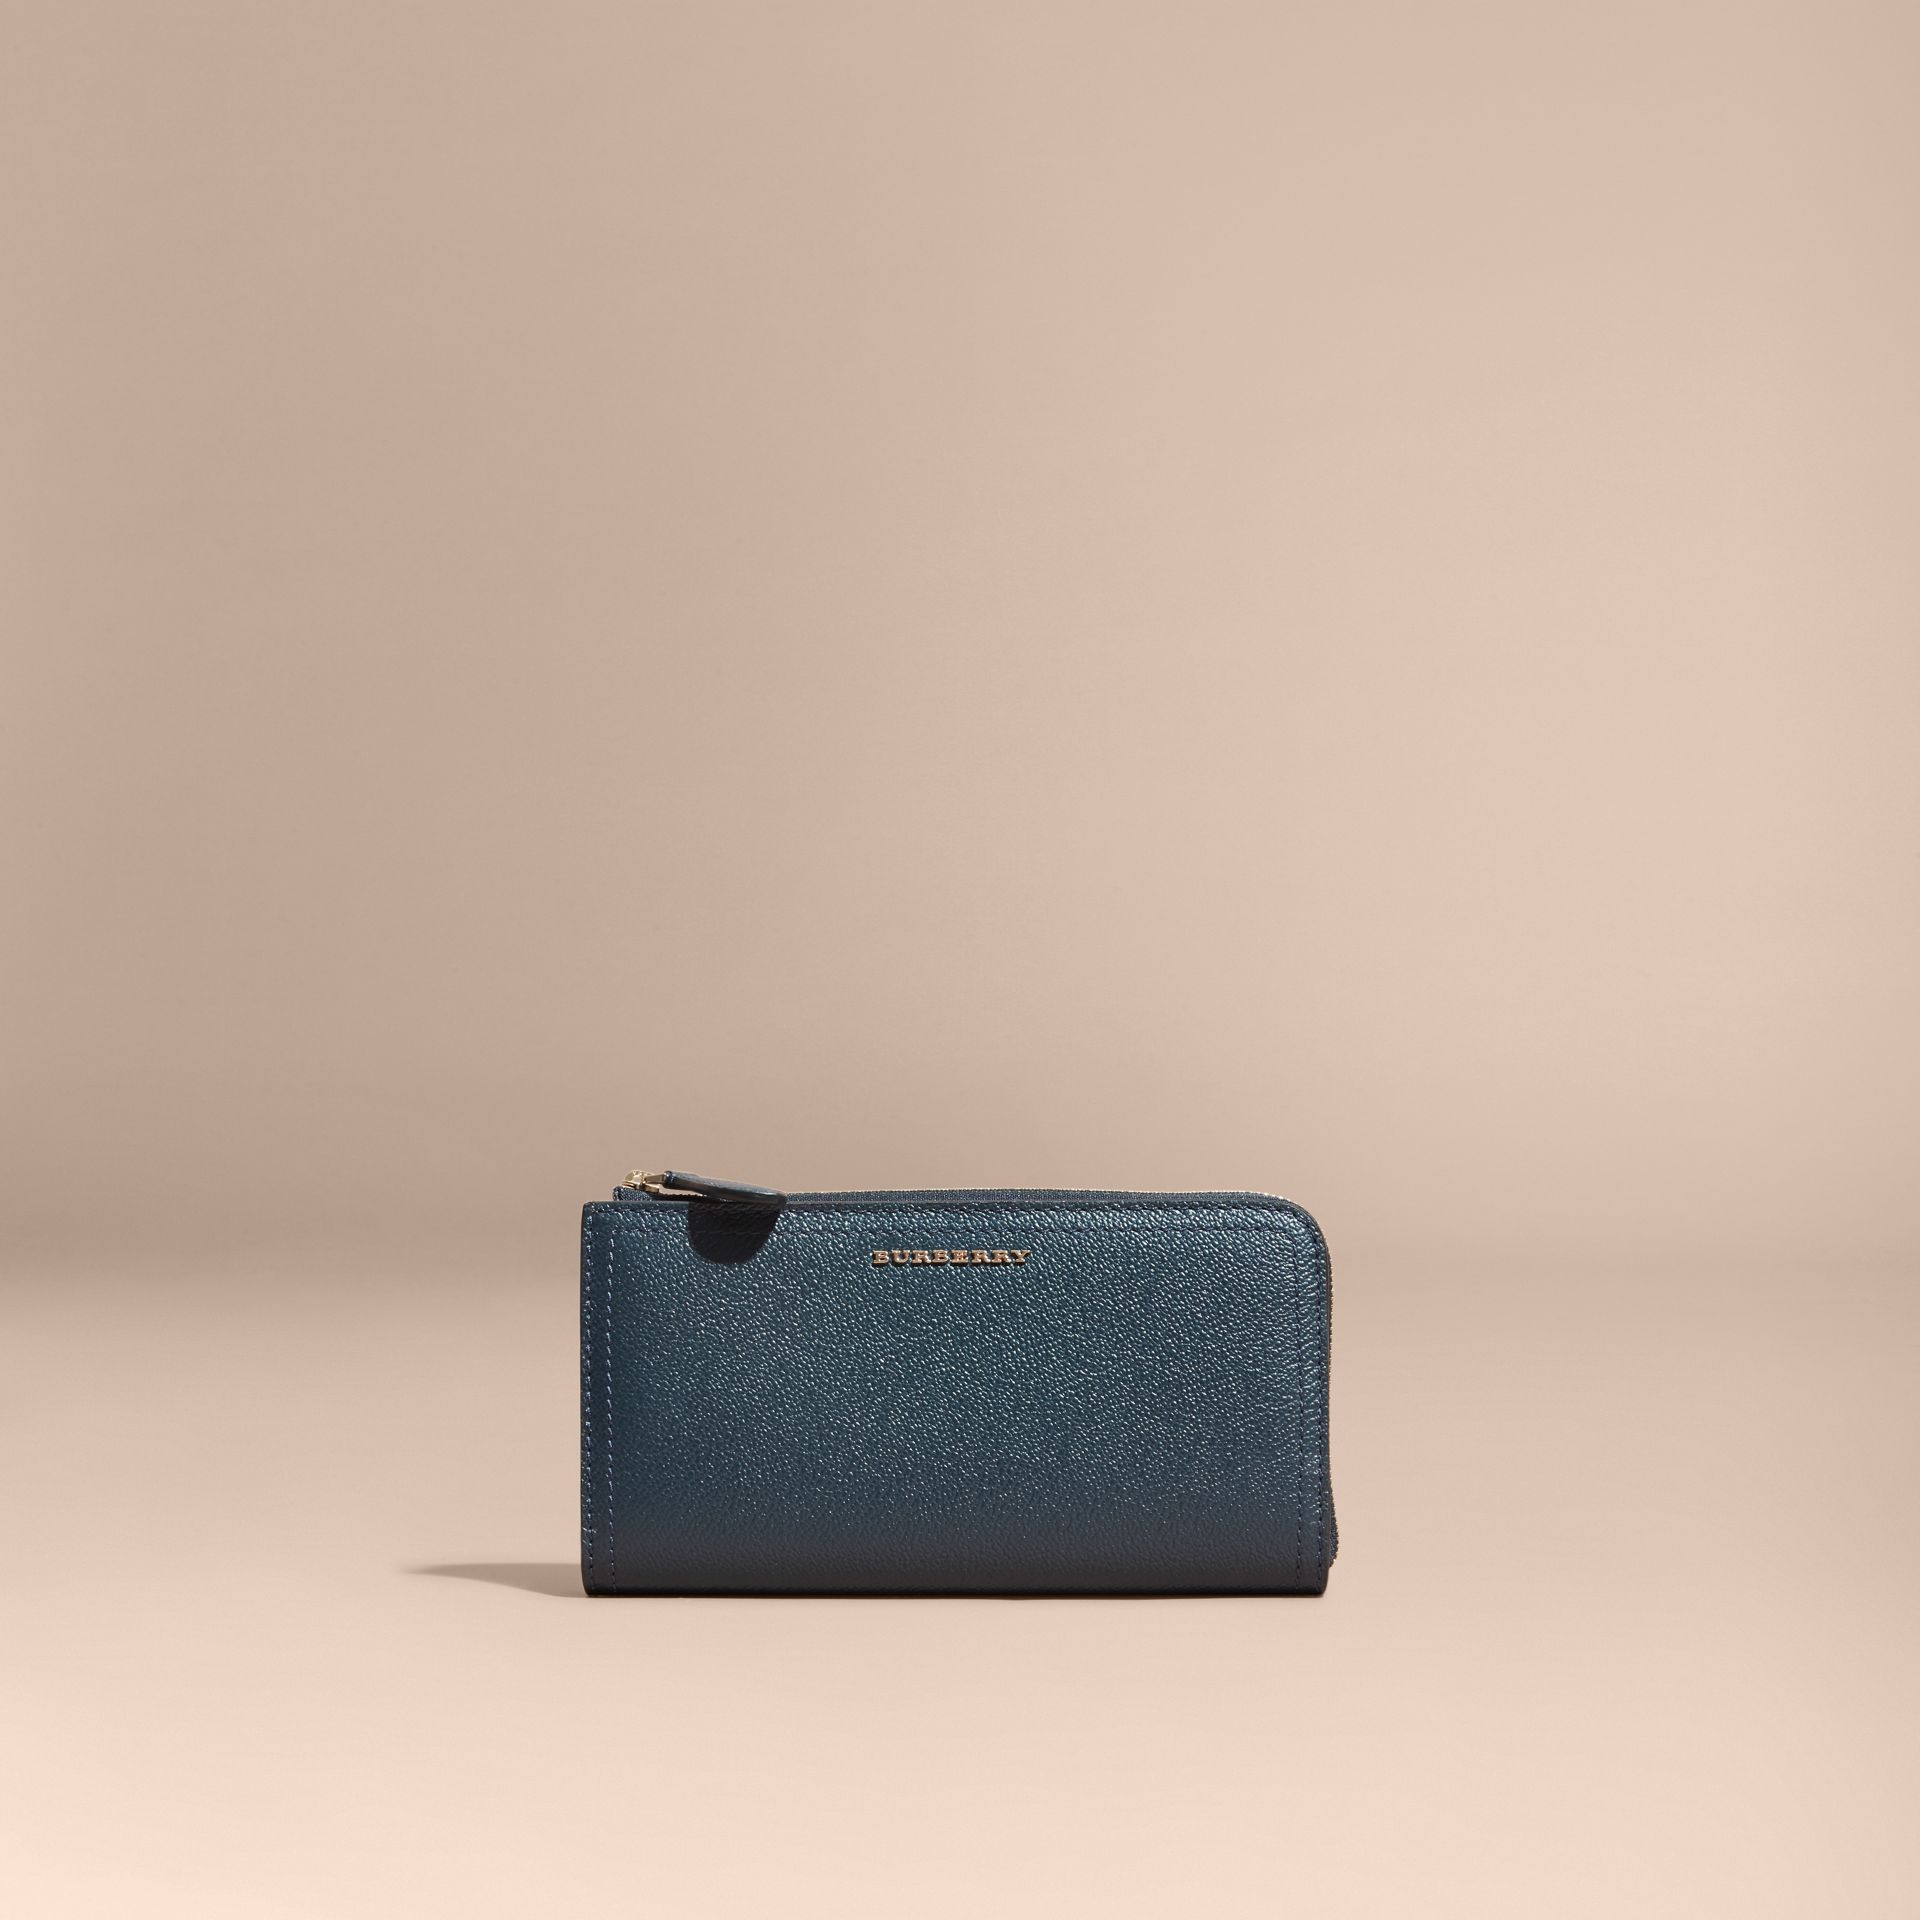 Grainy Leather Ziparound Wallet in Blue Carbon - Women | Burberry - gallery image 6